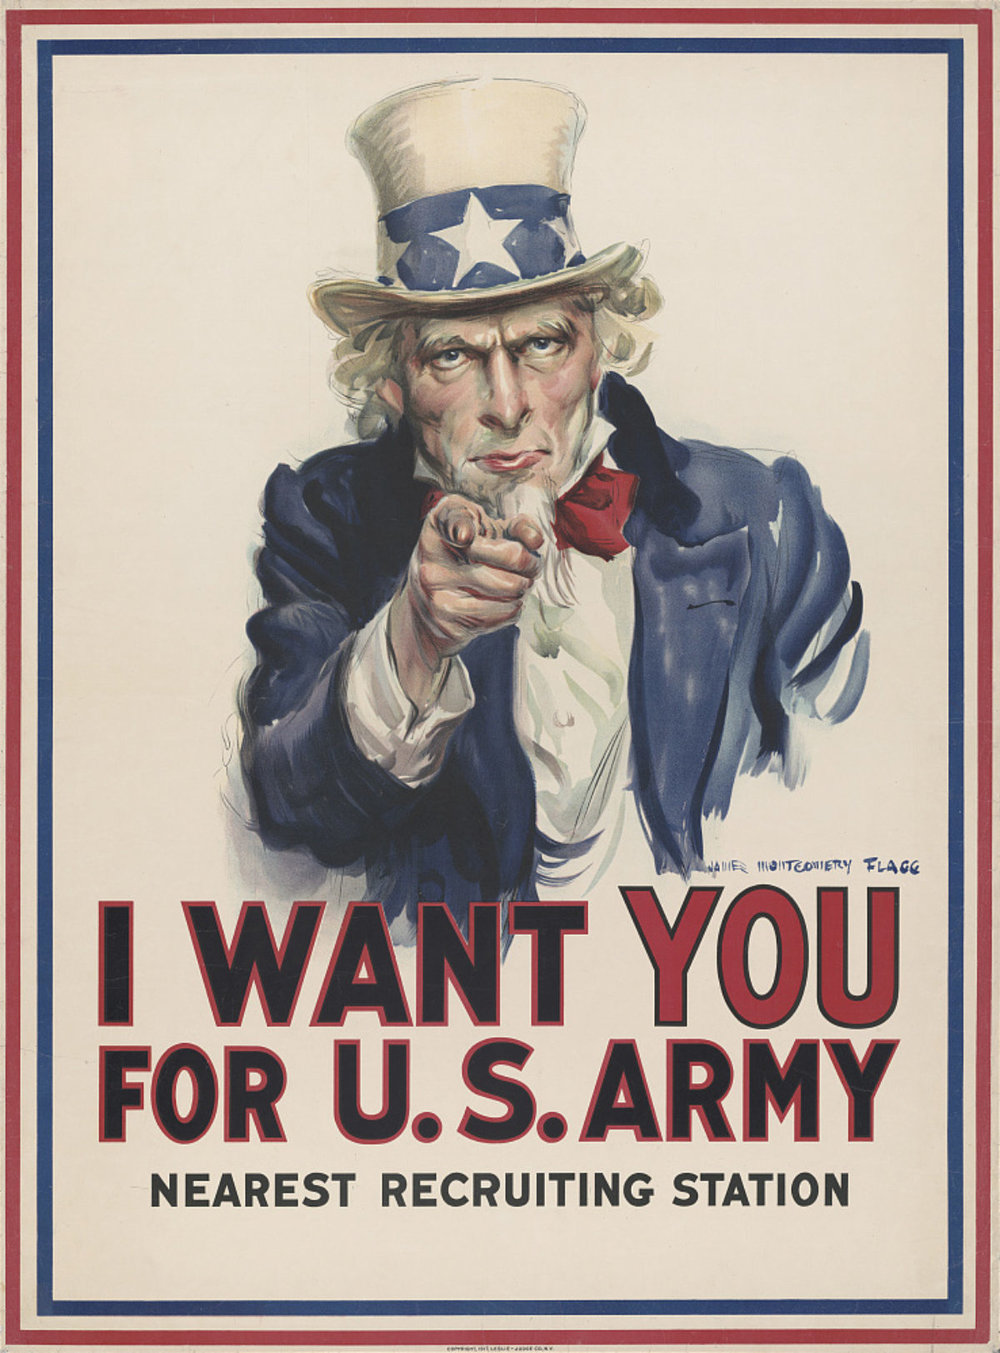 I-want-you-for-U.S.-Army.JPG